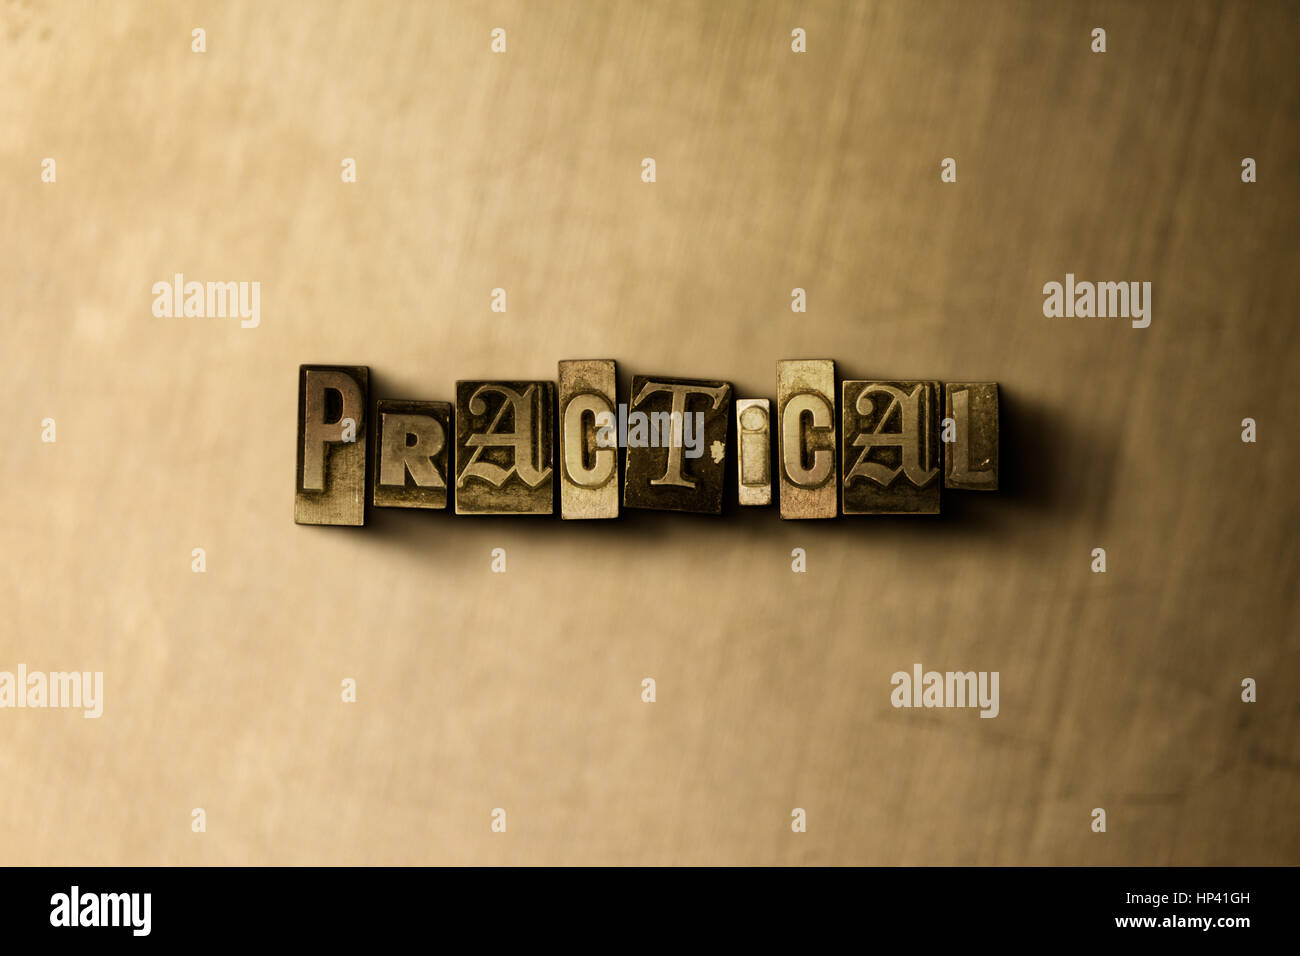 PRACTICAL - close-up of grungy vintage typeset word on metal backdrop. Royalty free stock illustration.  Can be - Stock Image